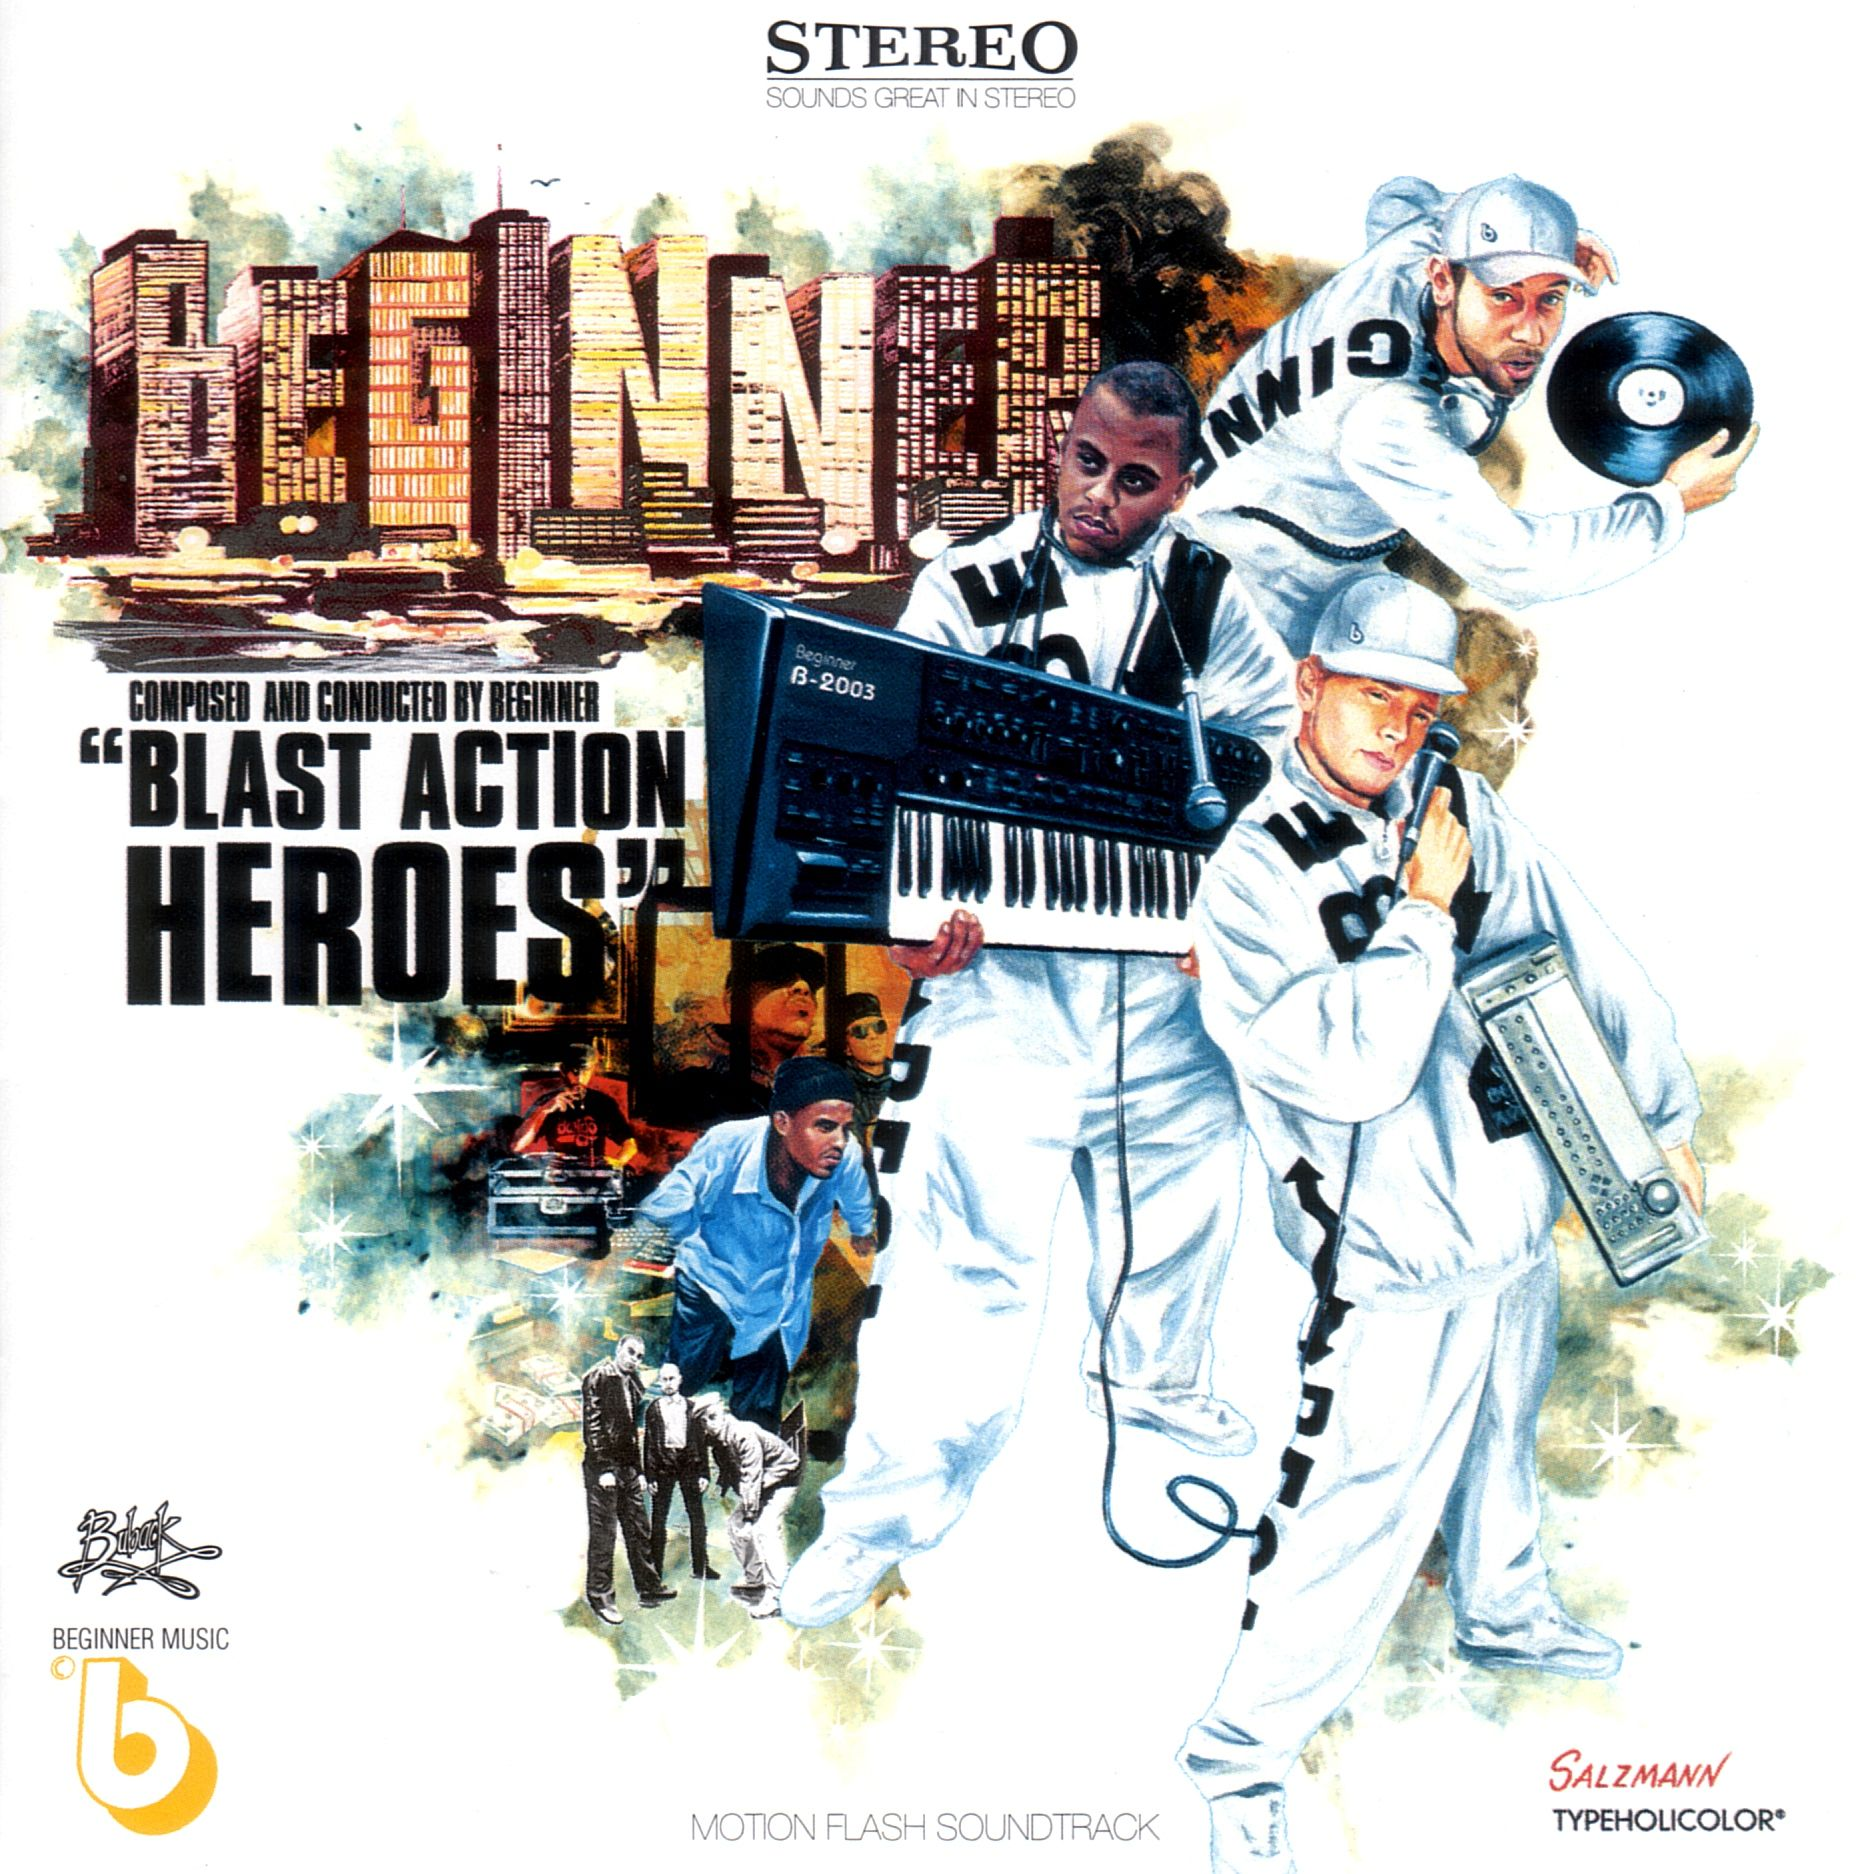 Beginner - Blast Action Heroes album cover